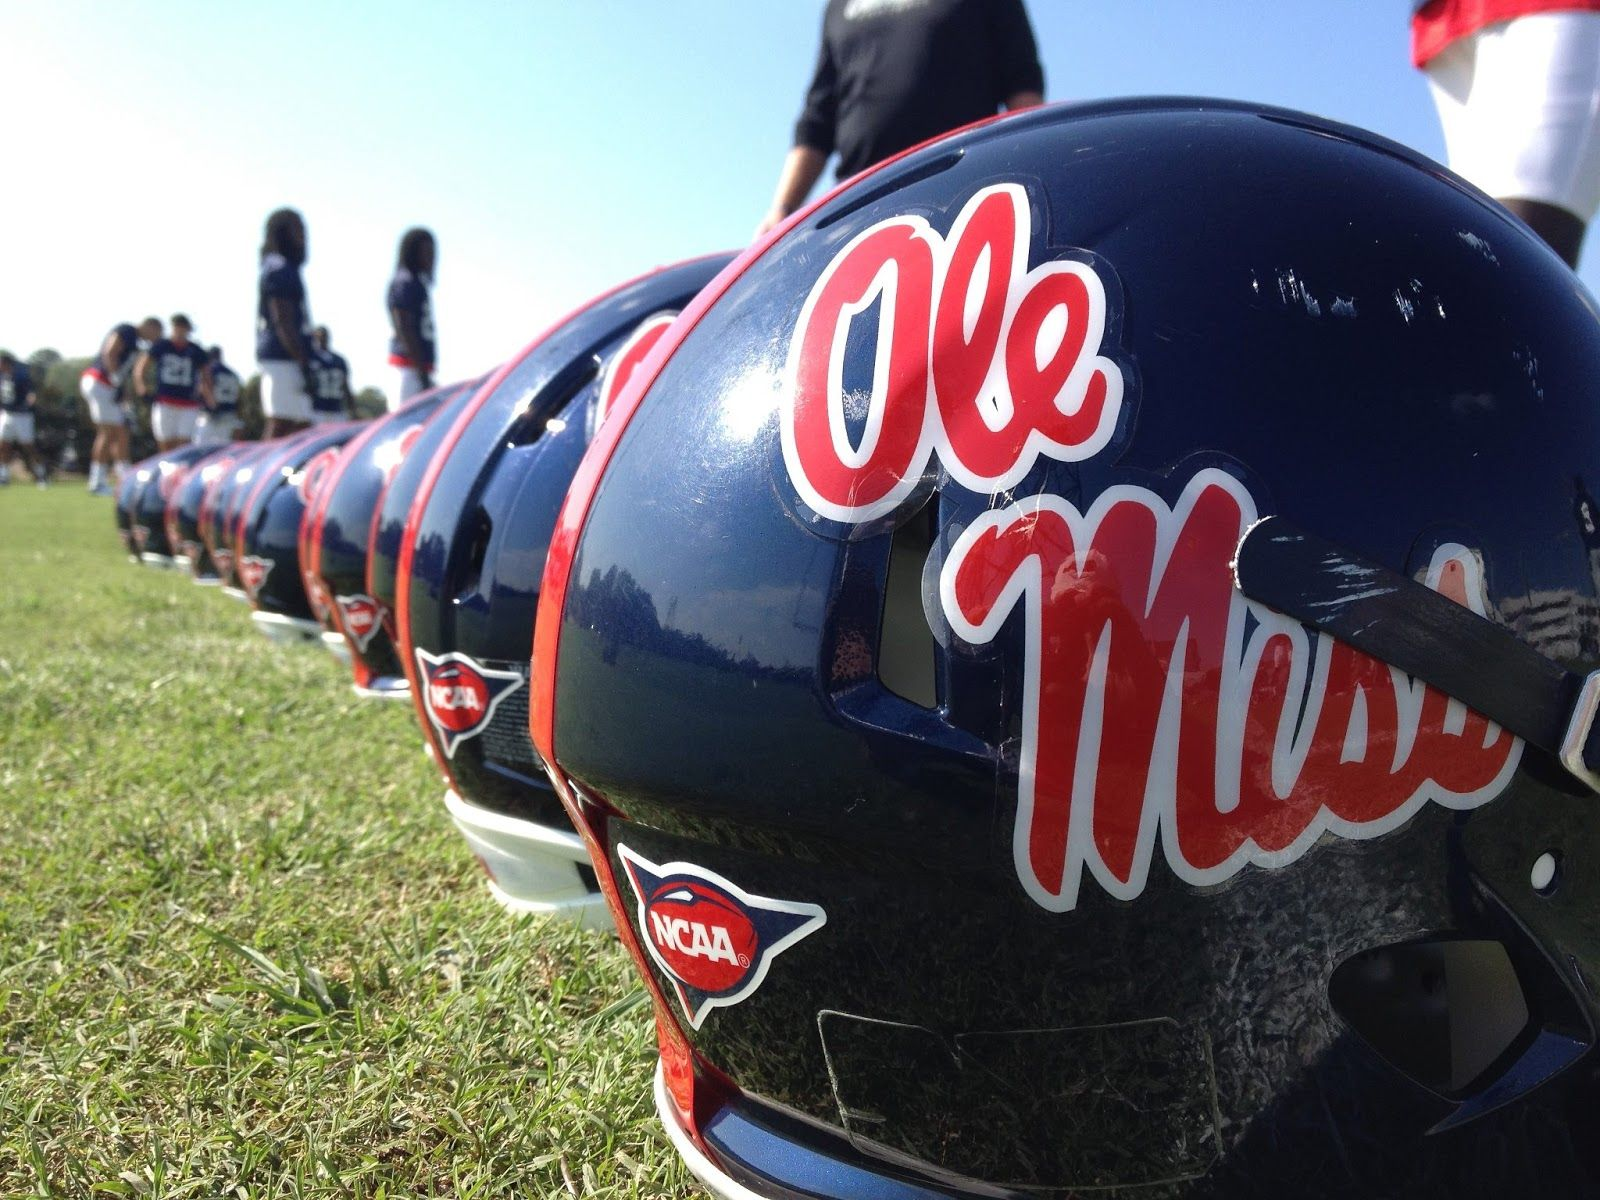 Ole Miss Wallpapers Browser Themes More For Rebels Fans Ole Miss Ole Miss Rebels Ole